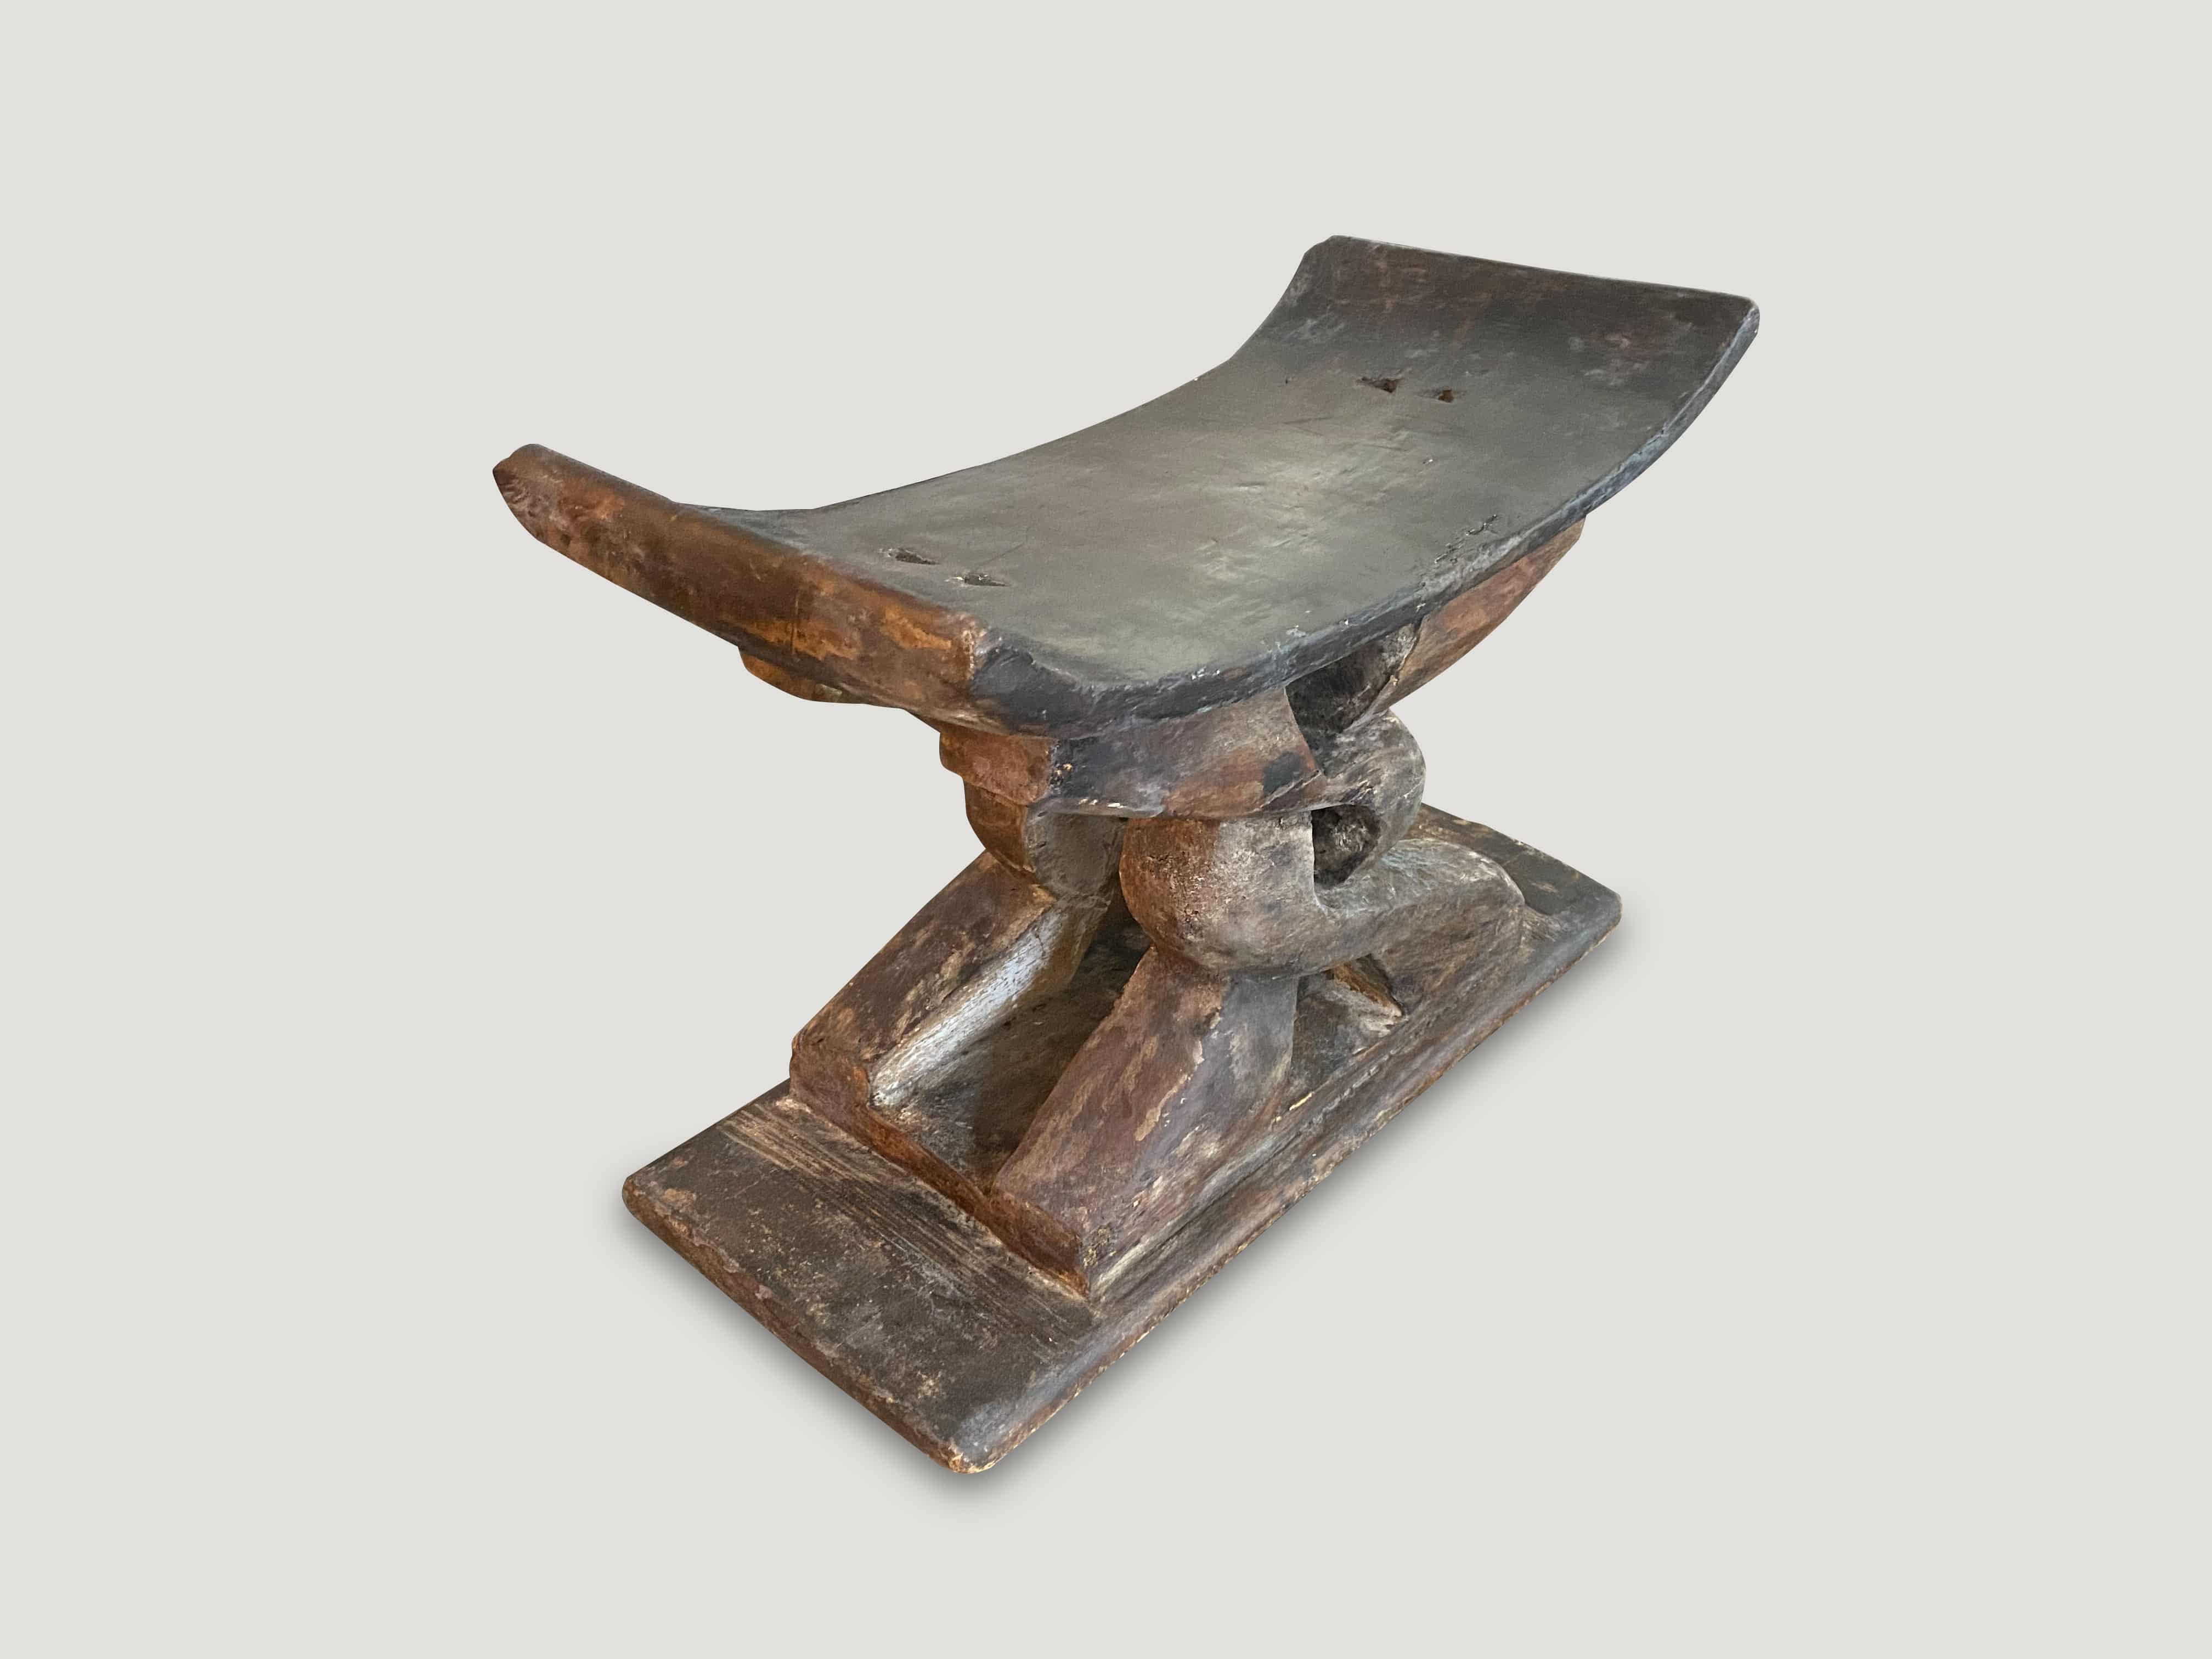 antique bench or stool made from reclaimed wood